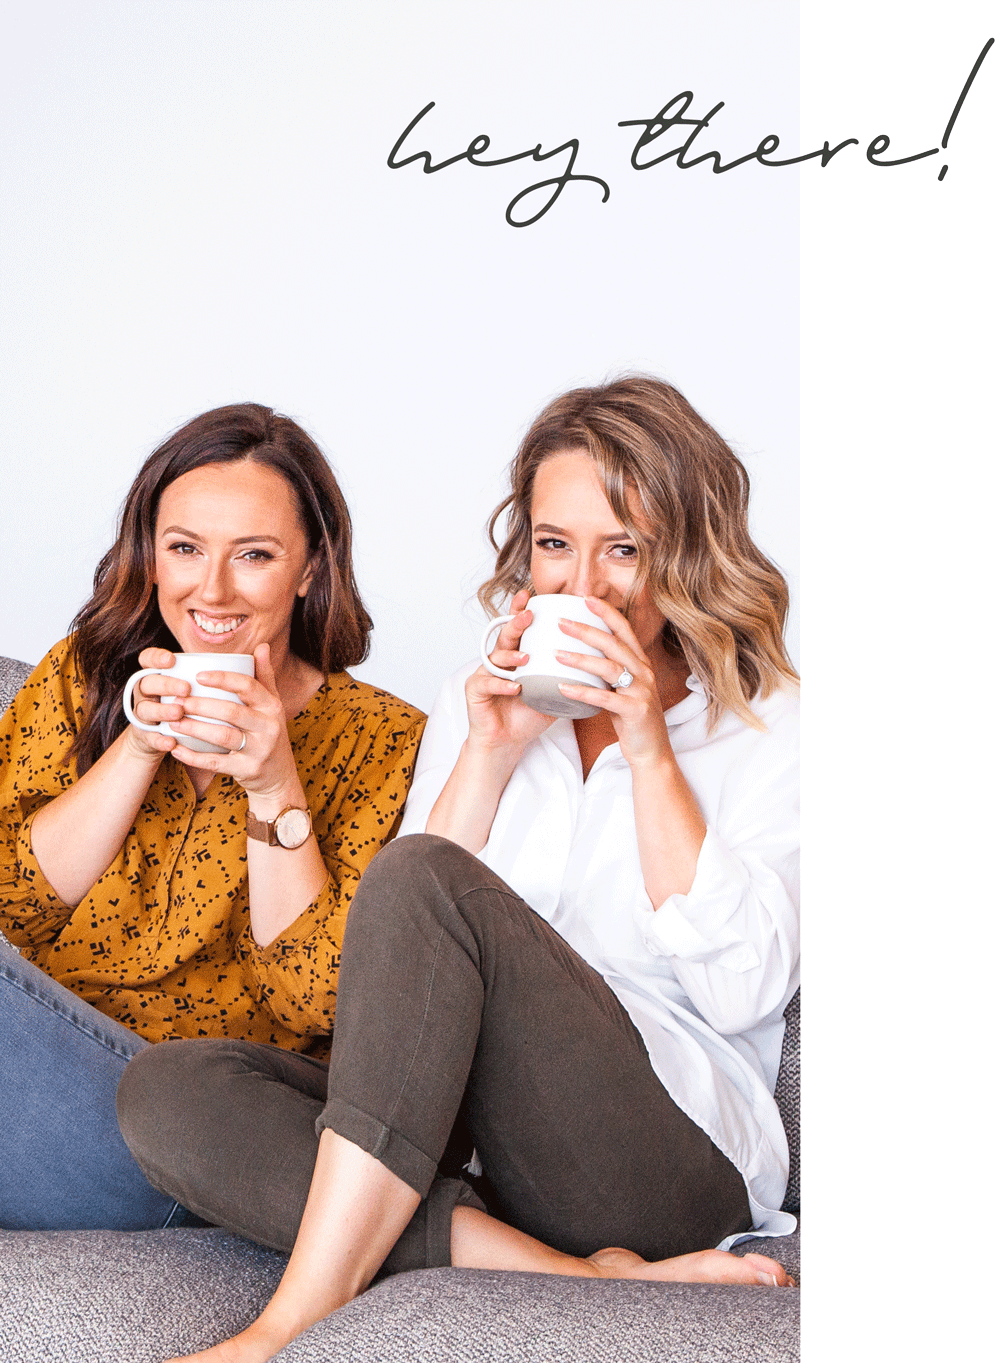 We're Jess & Lauren - a couple of small town coastal creatives - …experts at simplifying marketing, lovers of all things visual and captivated by great branding! Our happiest days are spent helping the small business movers and shakers stand out in the marketplace.